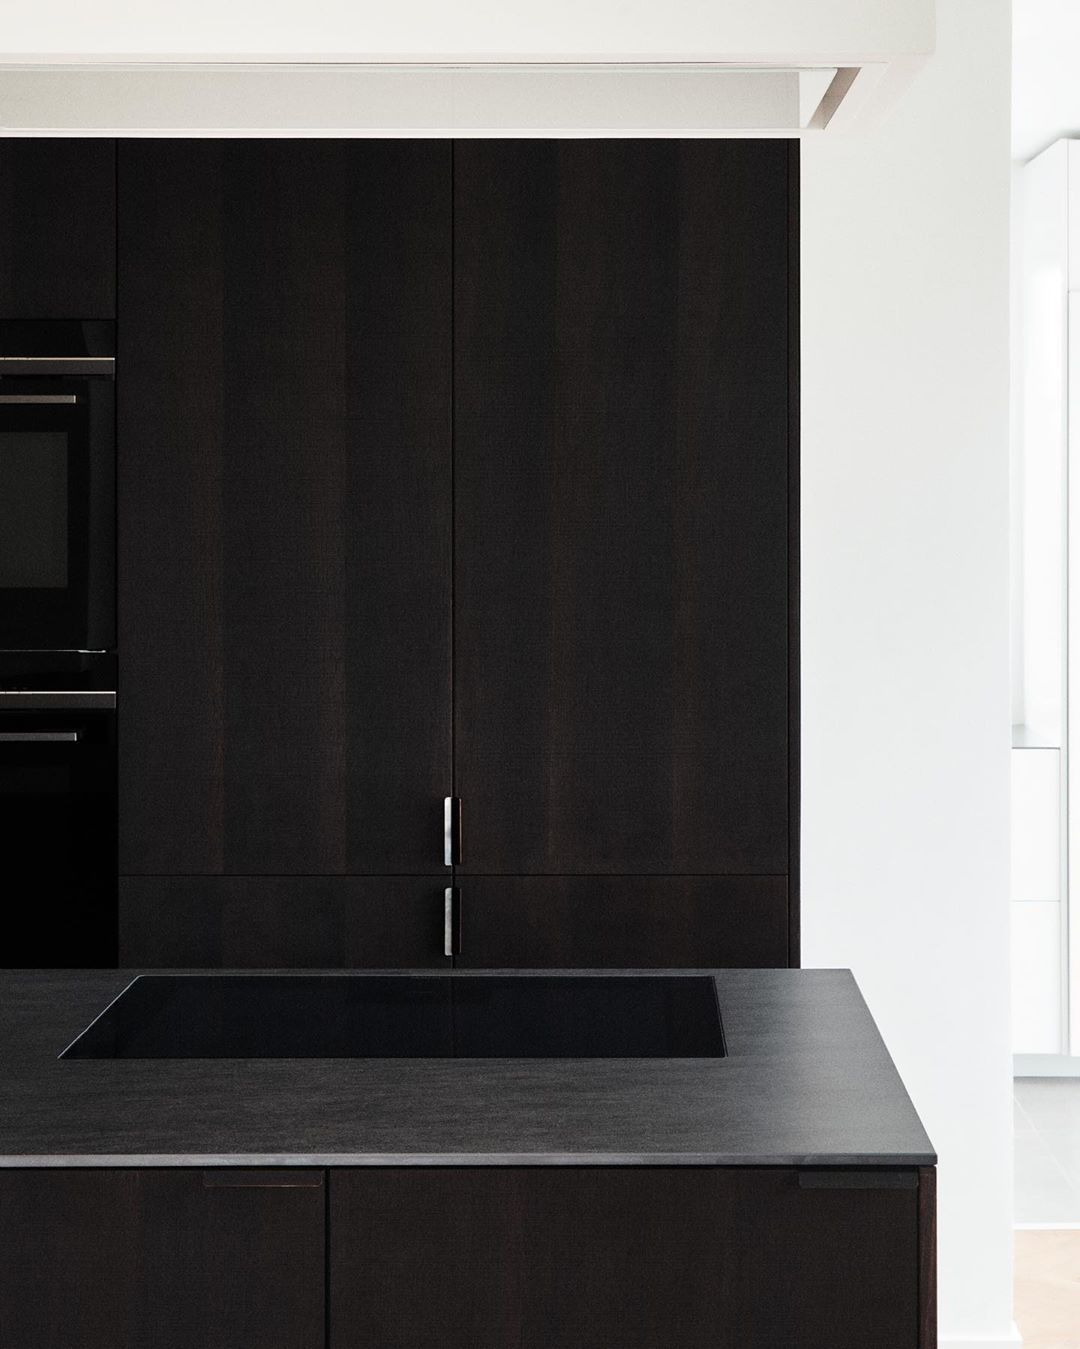 Norm Architects' kitchen design SURFACE in sawn smoked oak